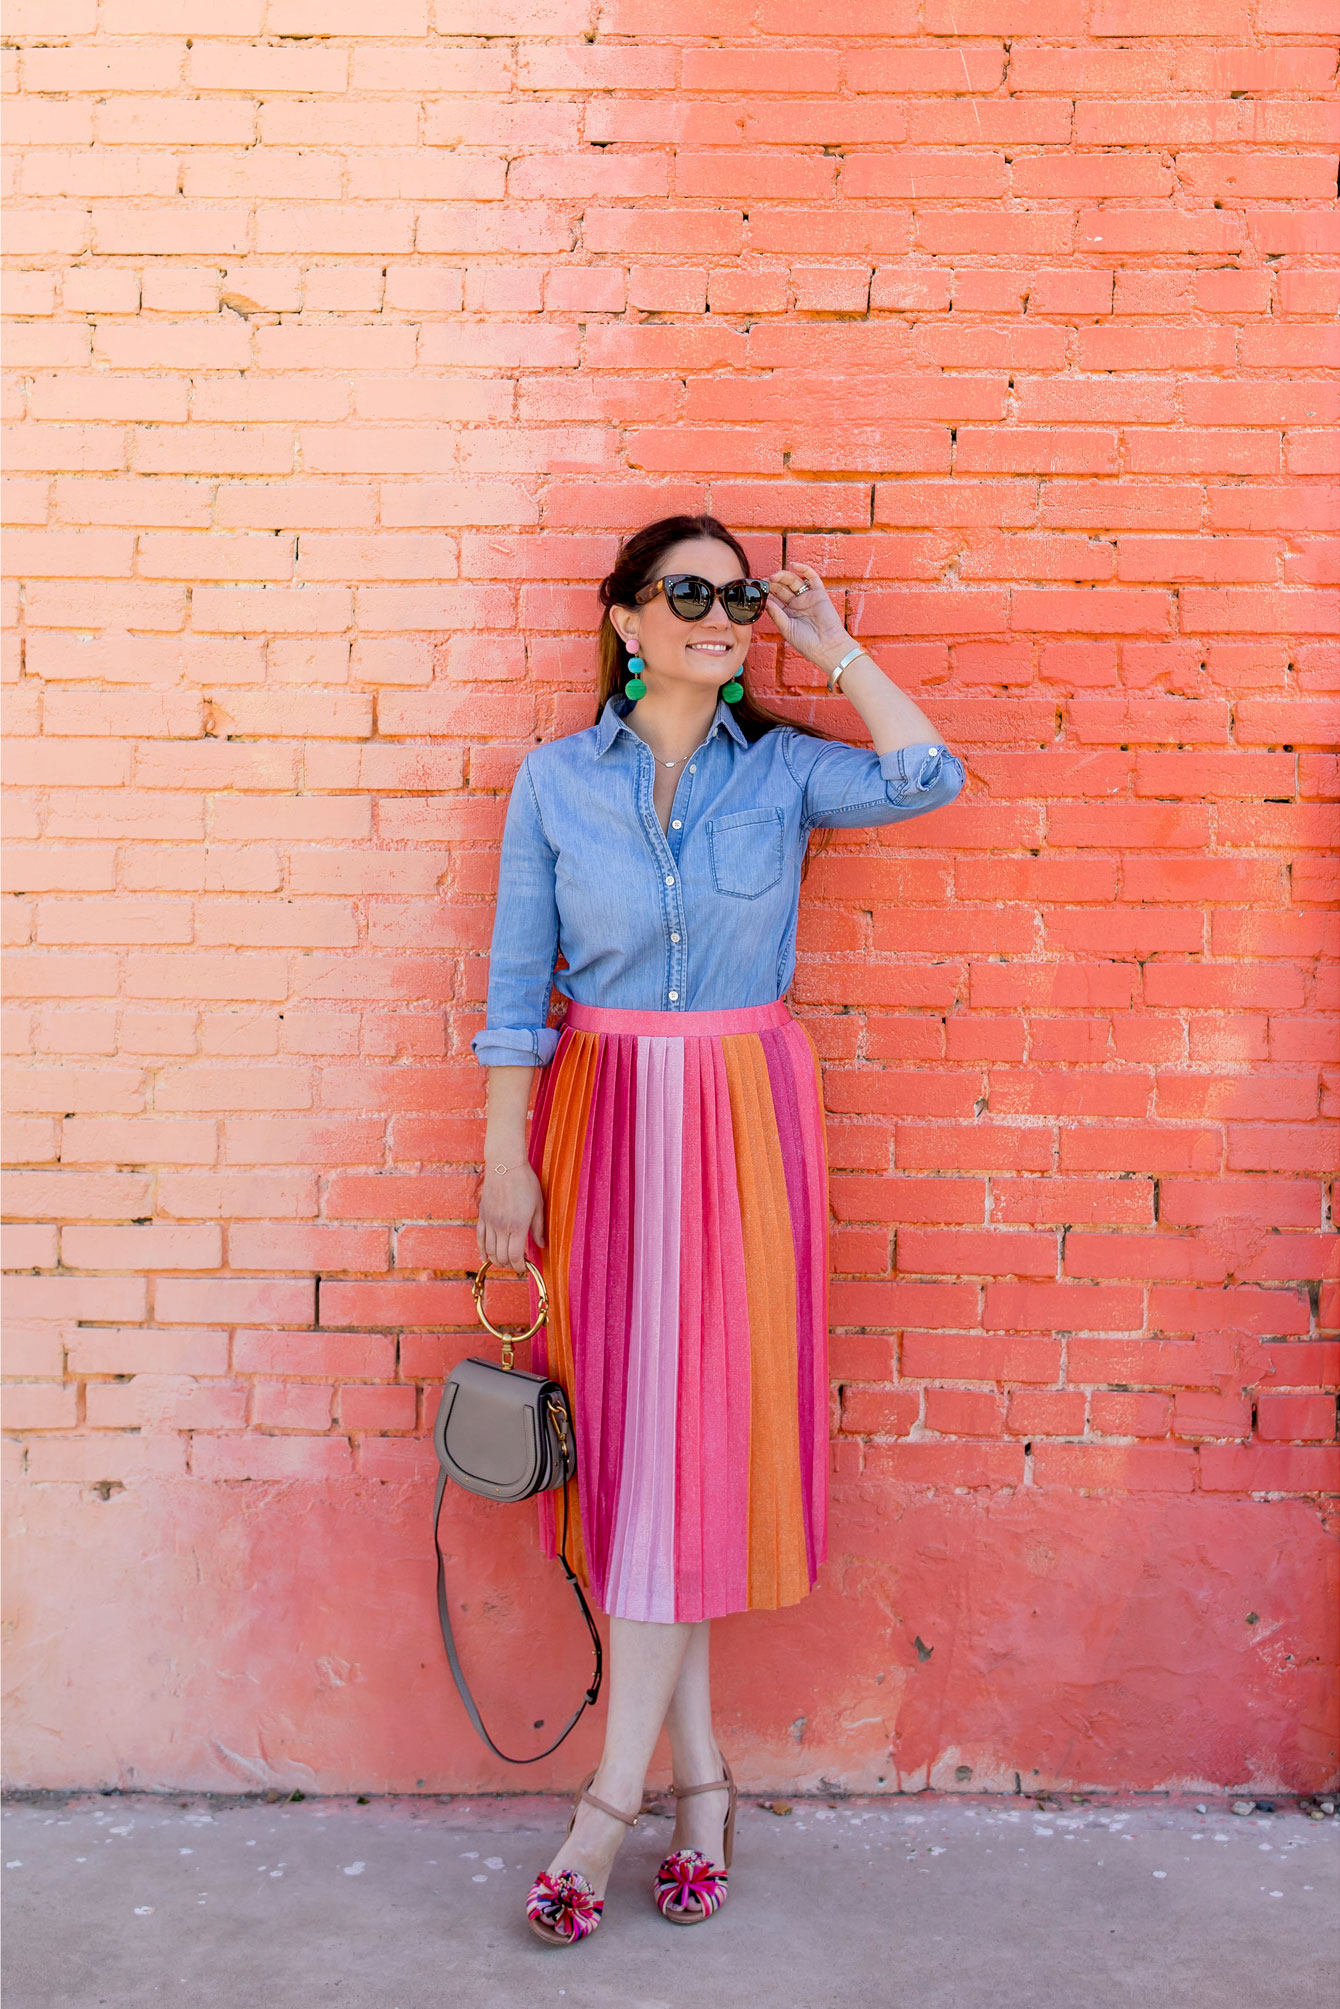 Anthropologie Pink Ombre Pleated Midi Skirt